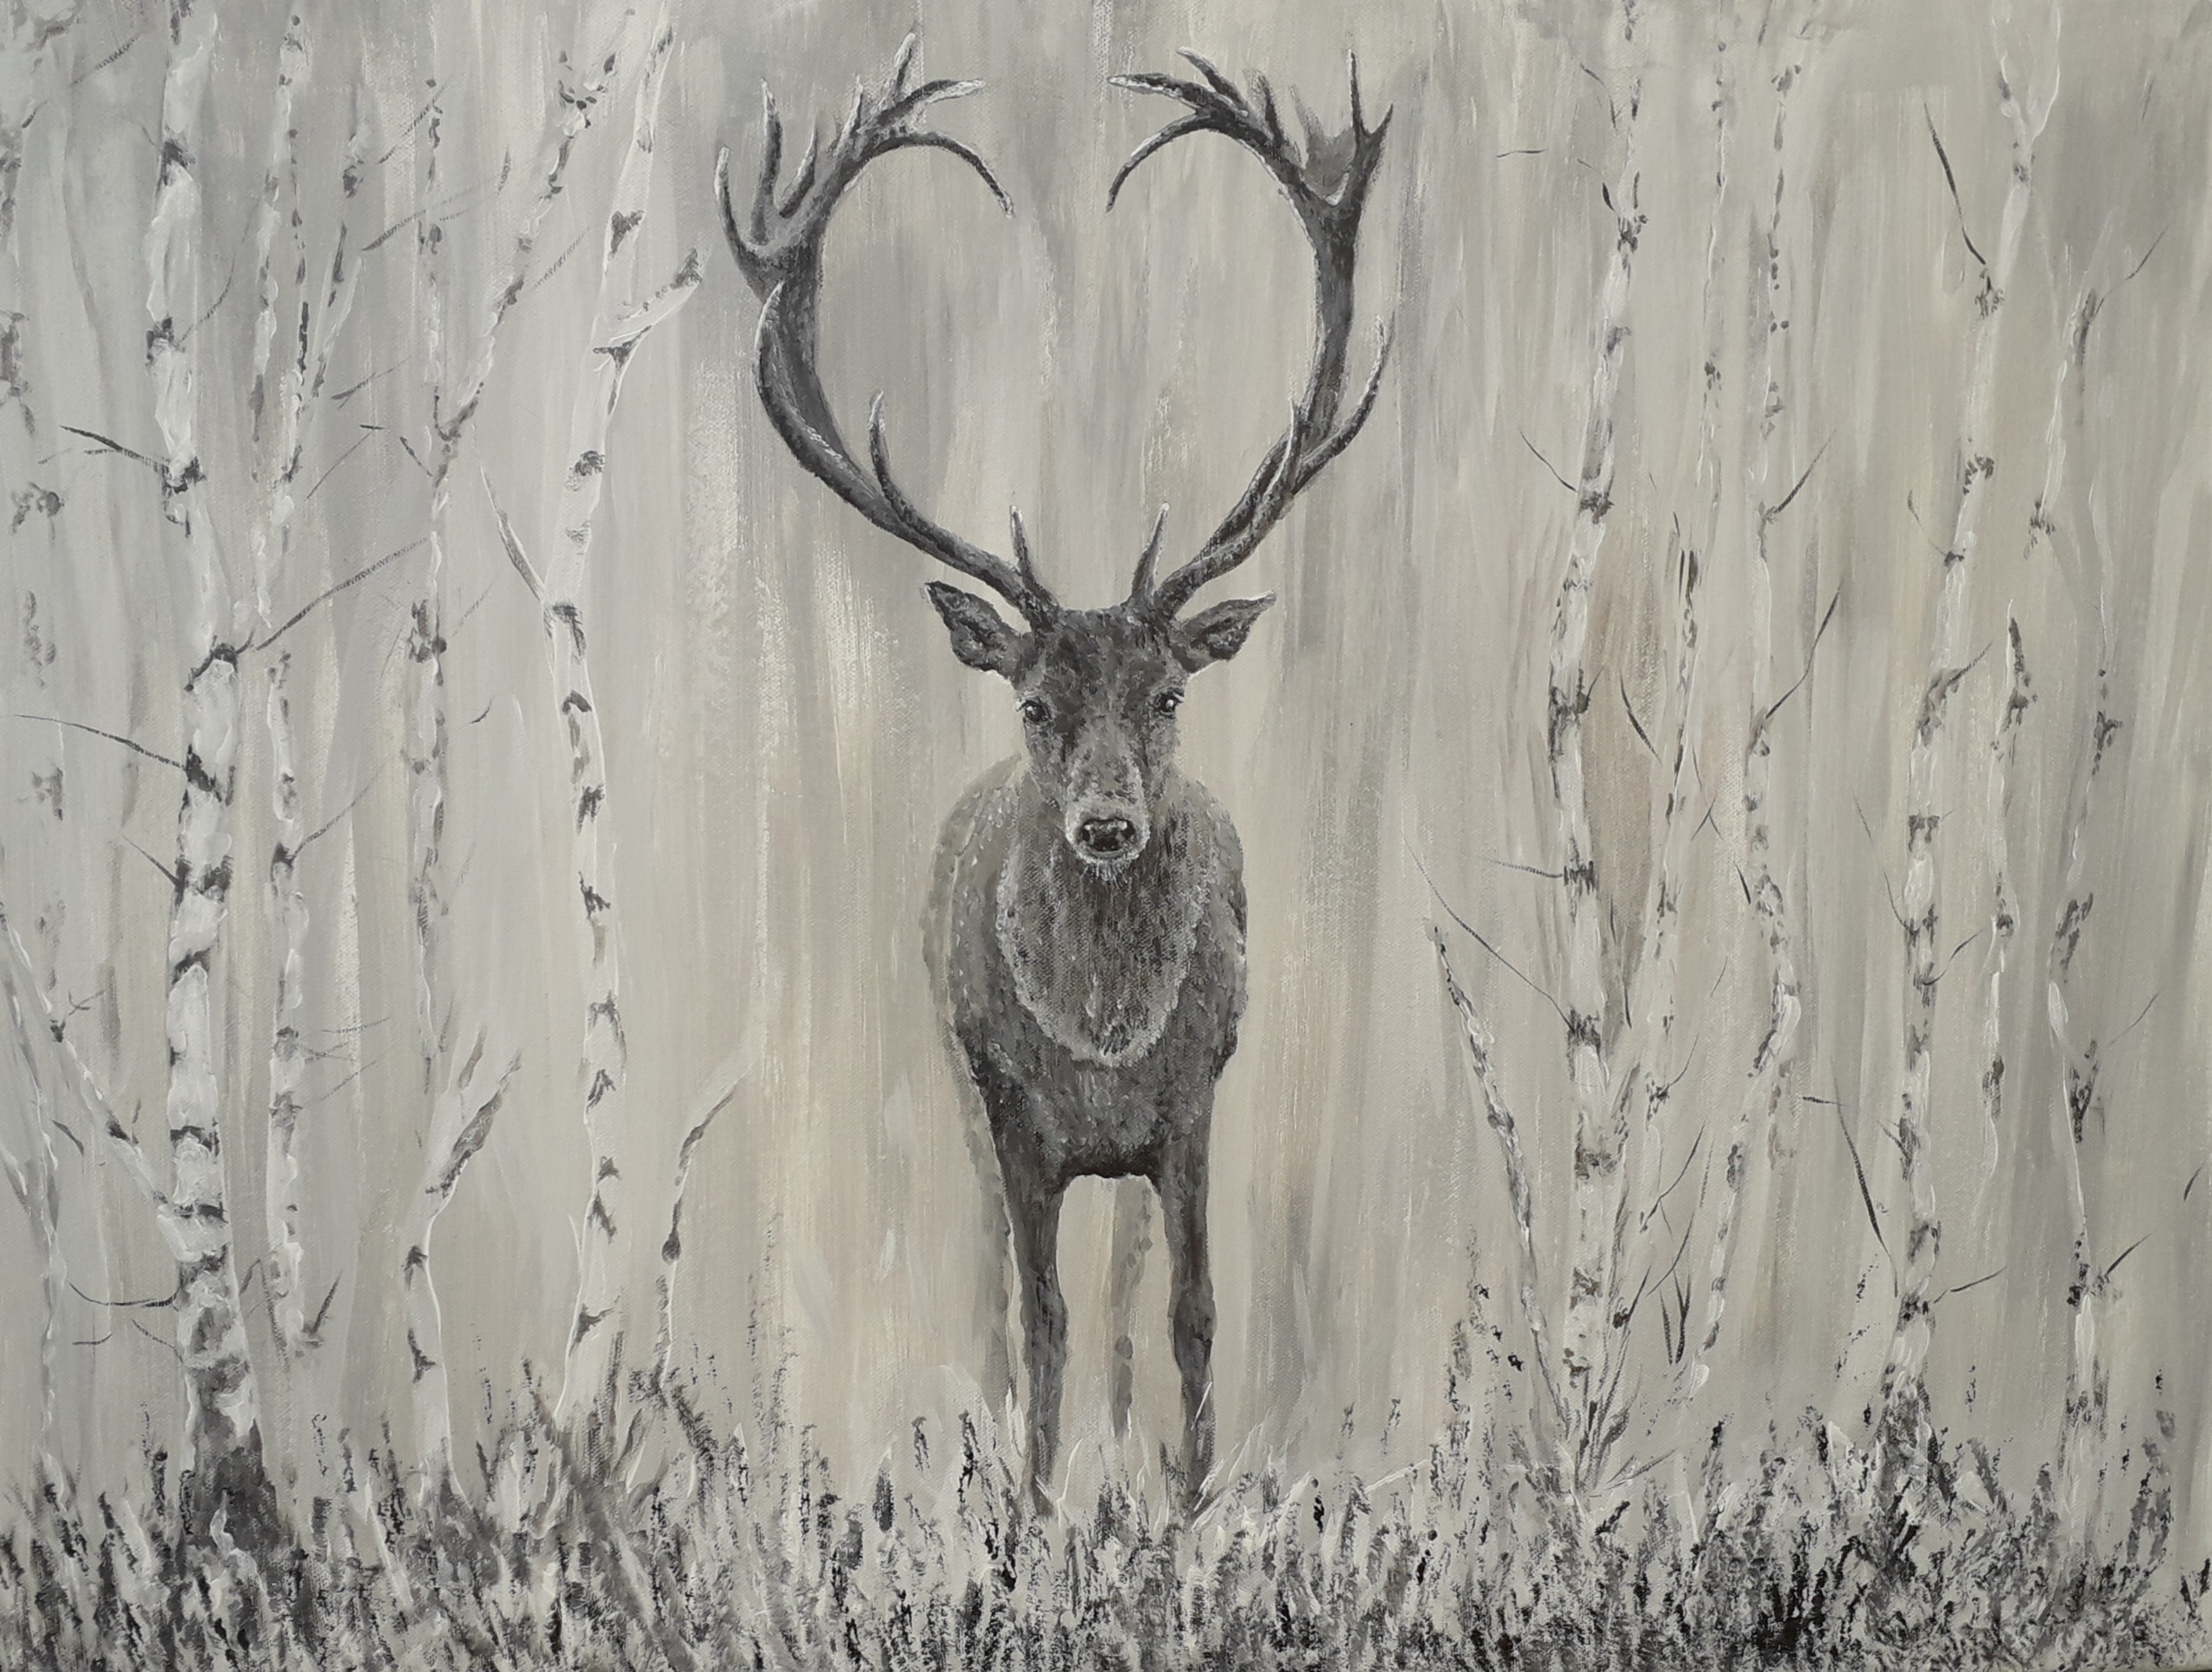 Stag in silver birches